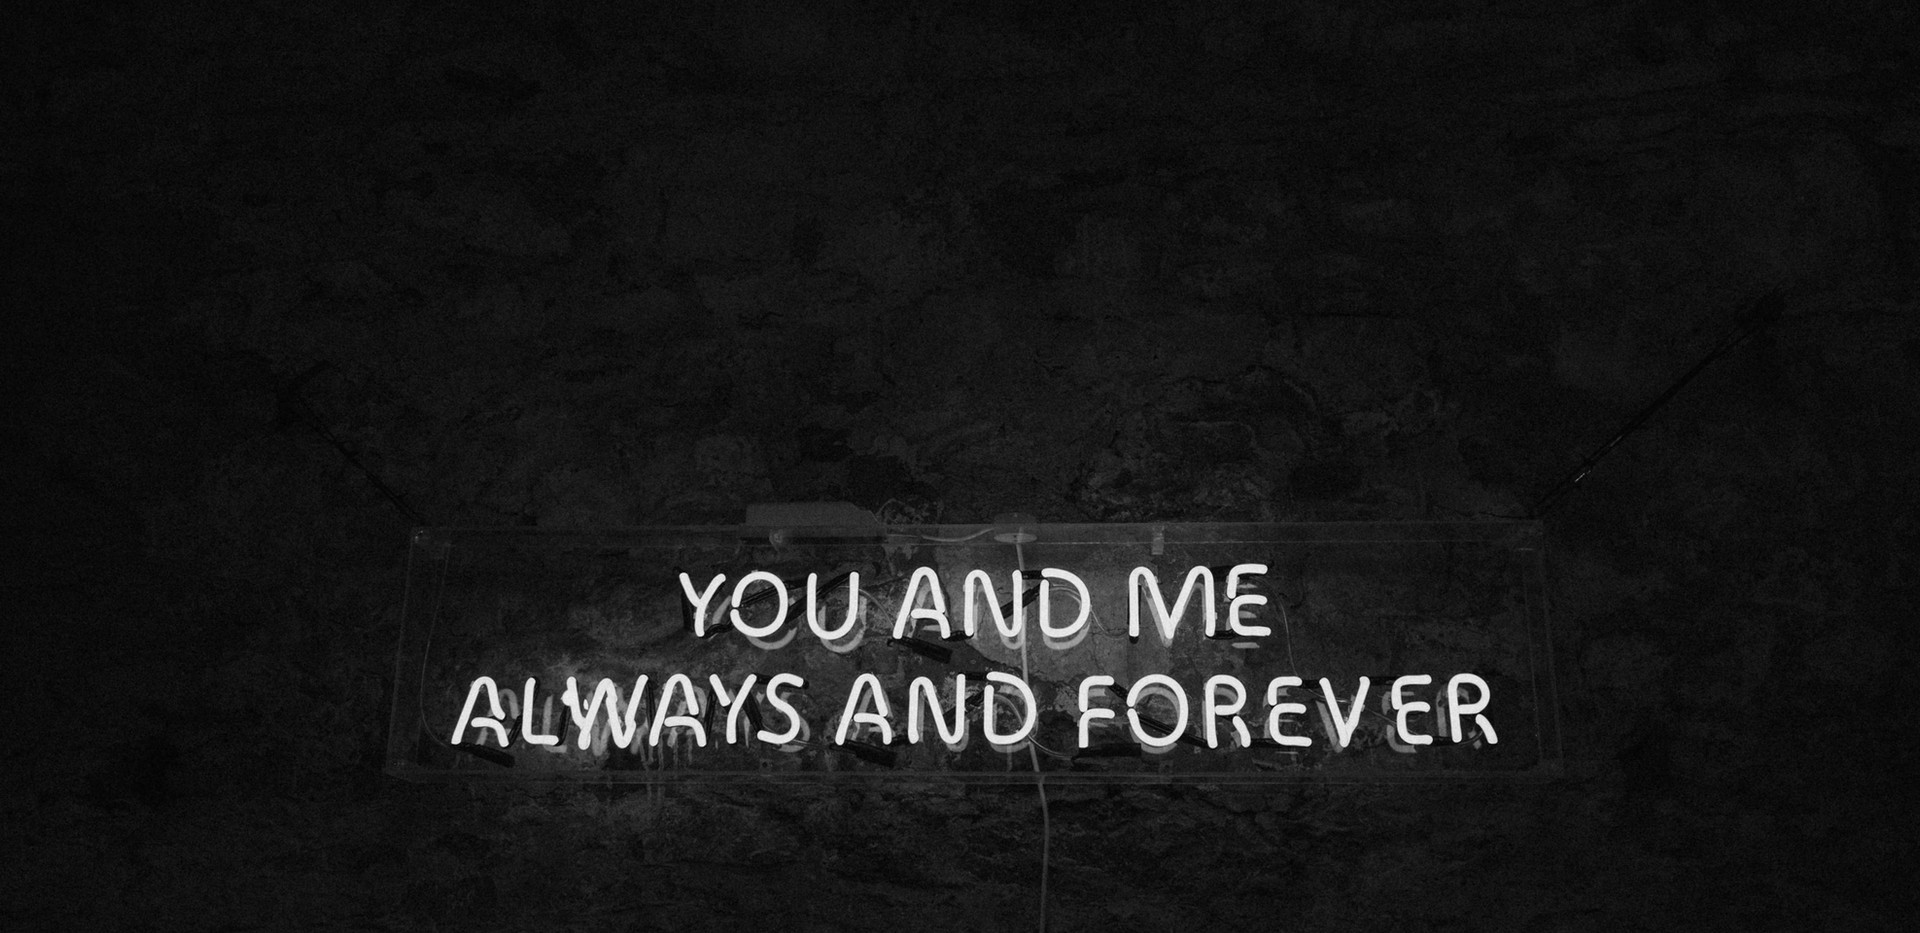 YOU AND ME ALWAYS AND FOREVER Neon sign